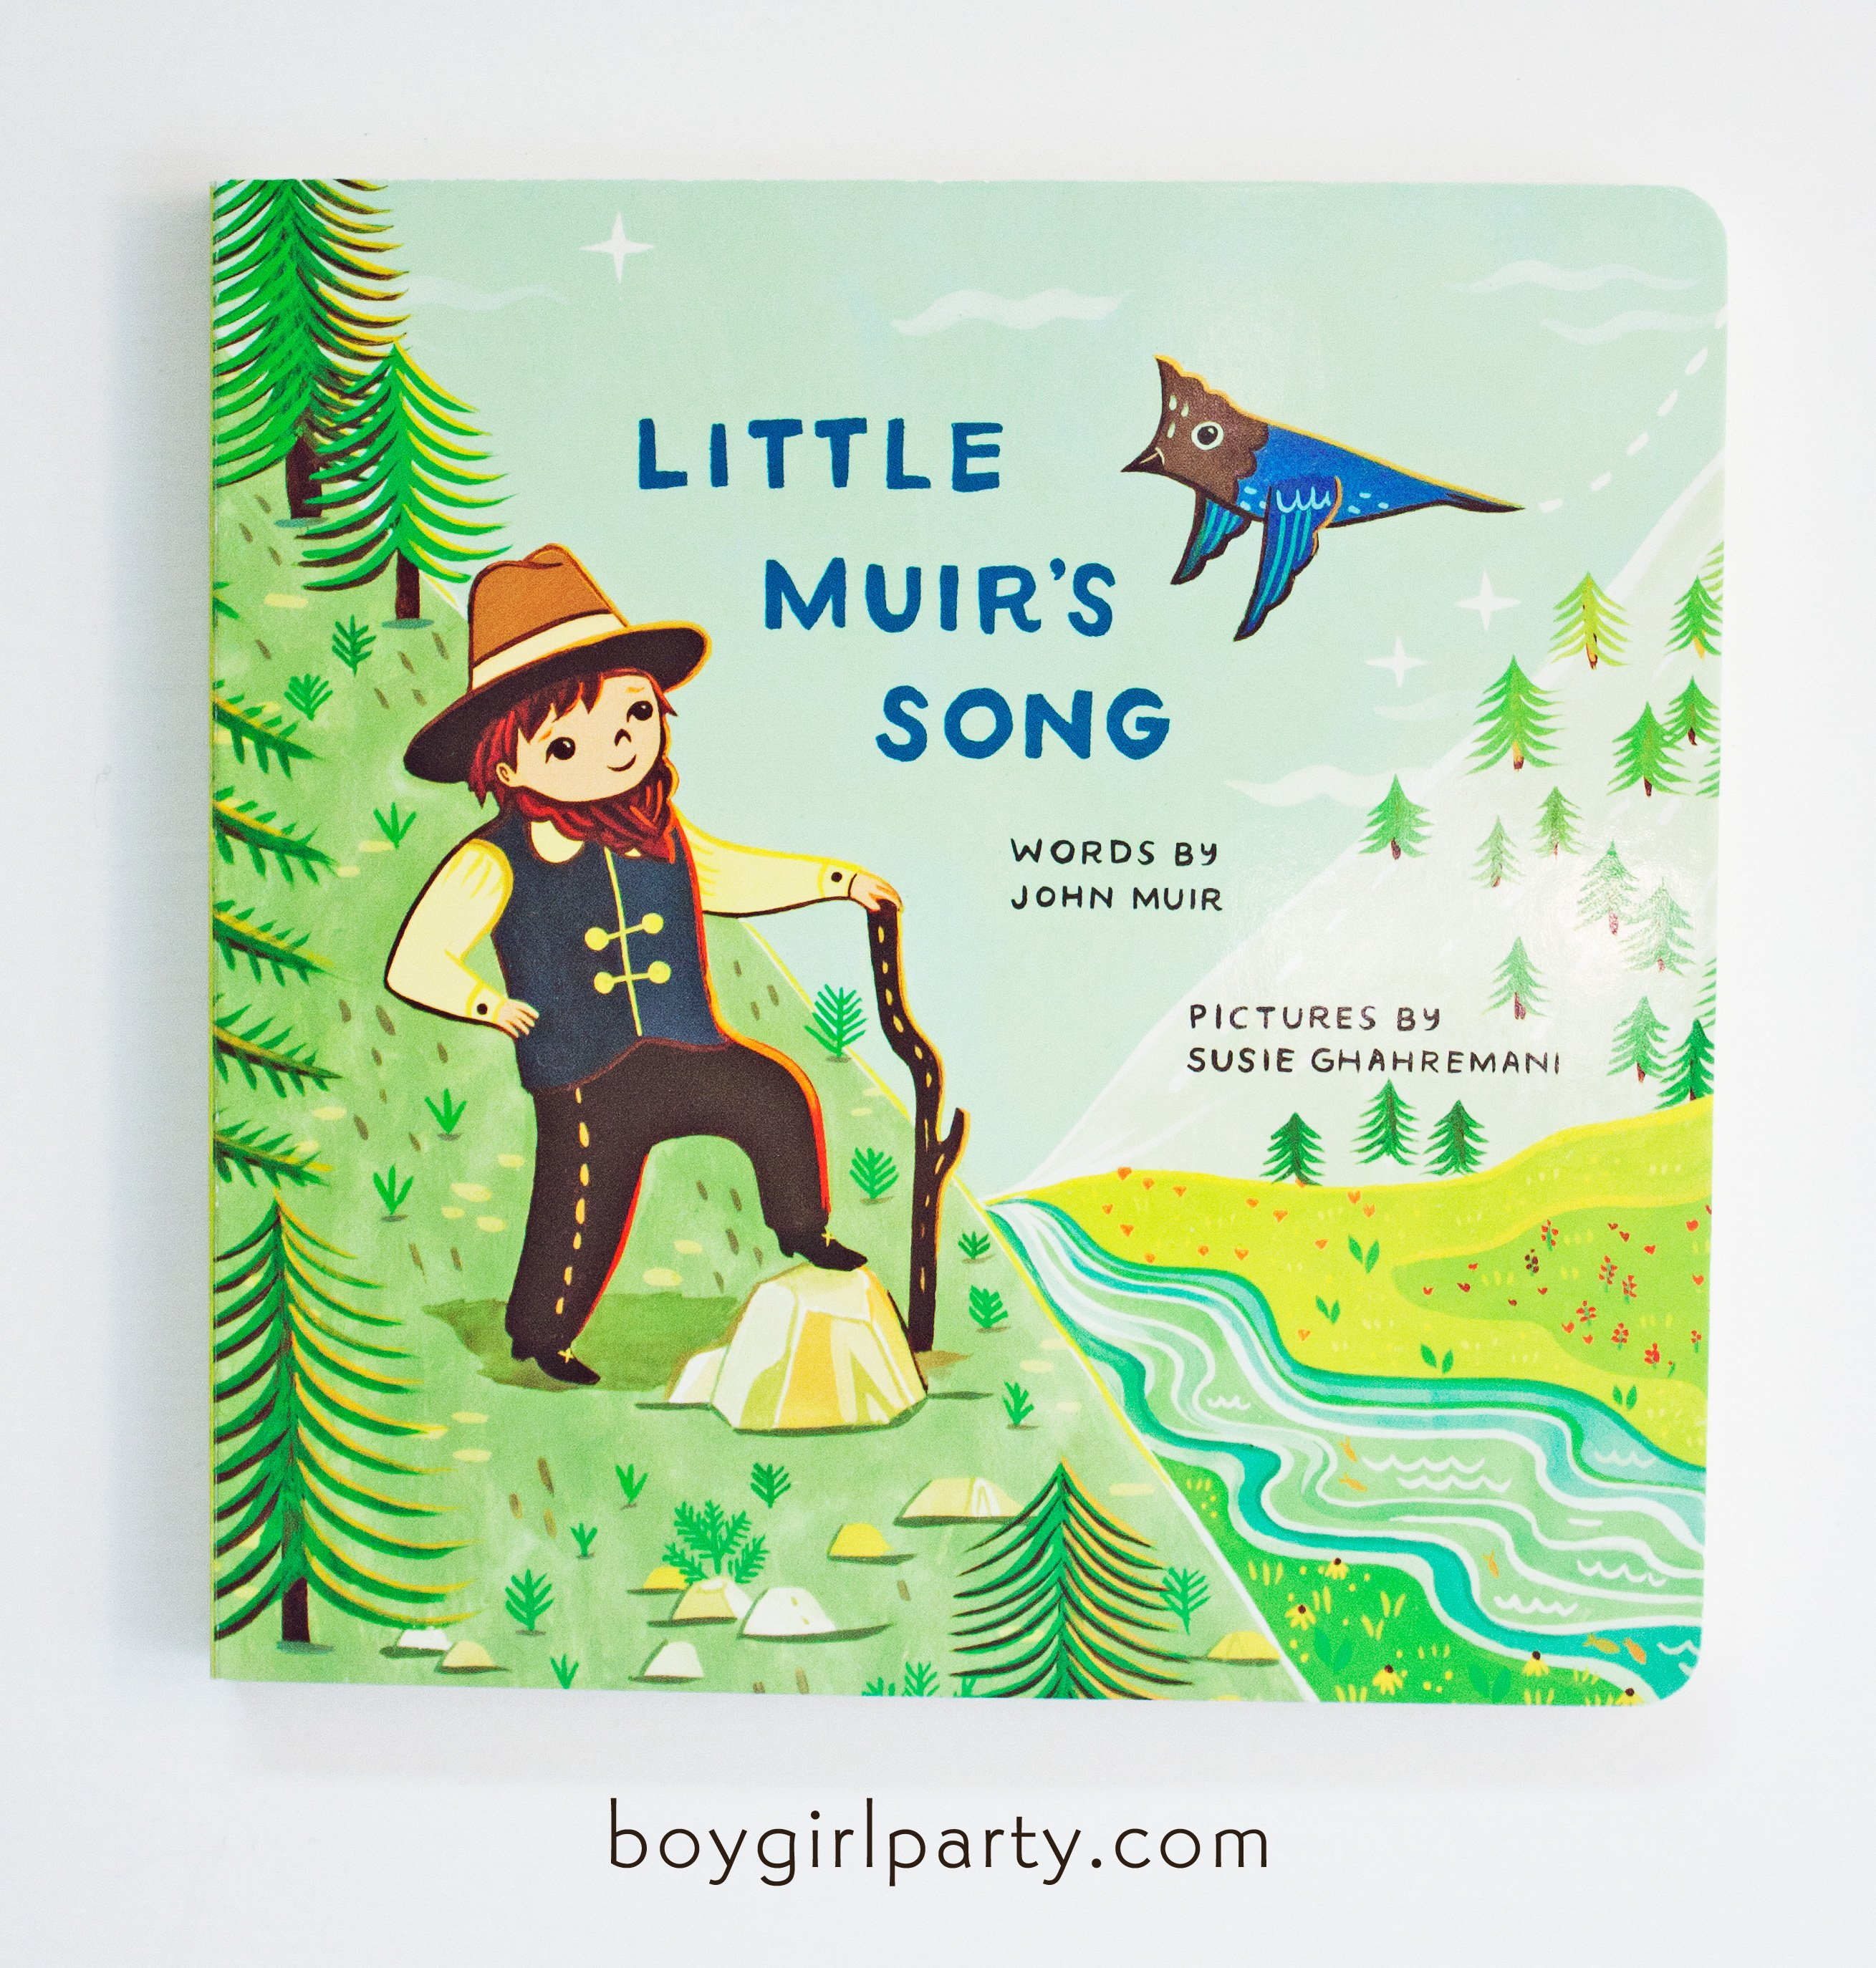 Image of Little Muir's Song -- Children's Picture Board Book by John Muir, illustrated by Susie Ghahremani